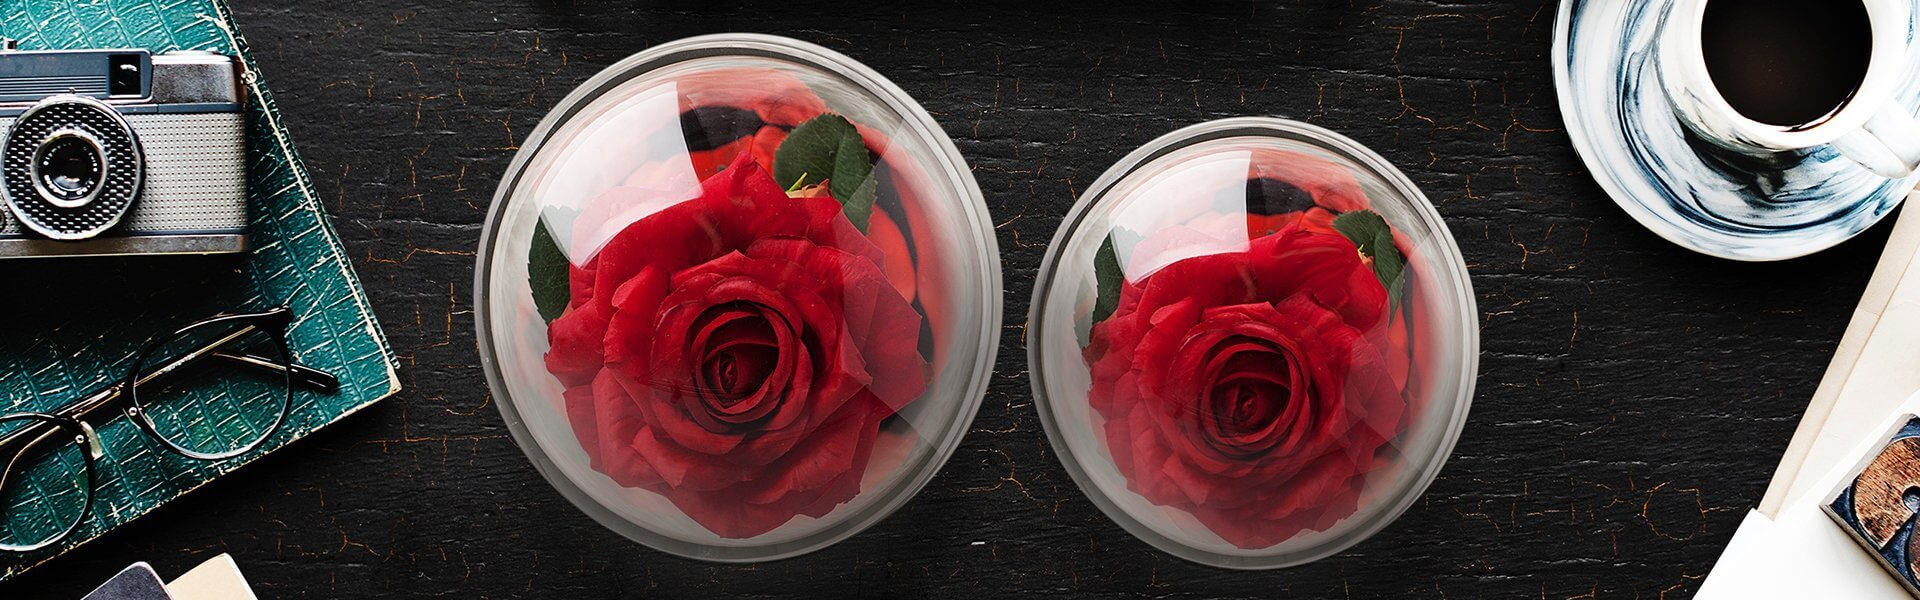 Two Red everlasting roses in crystal domes